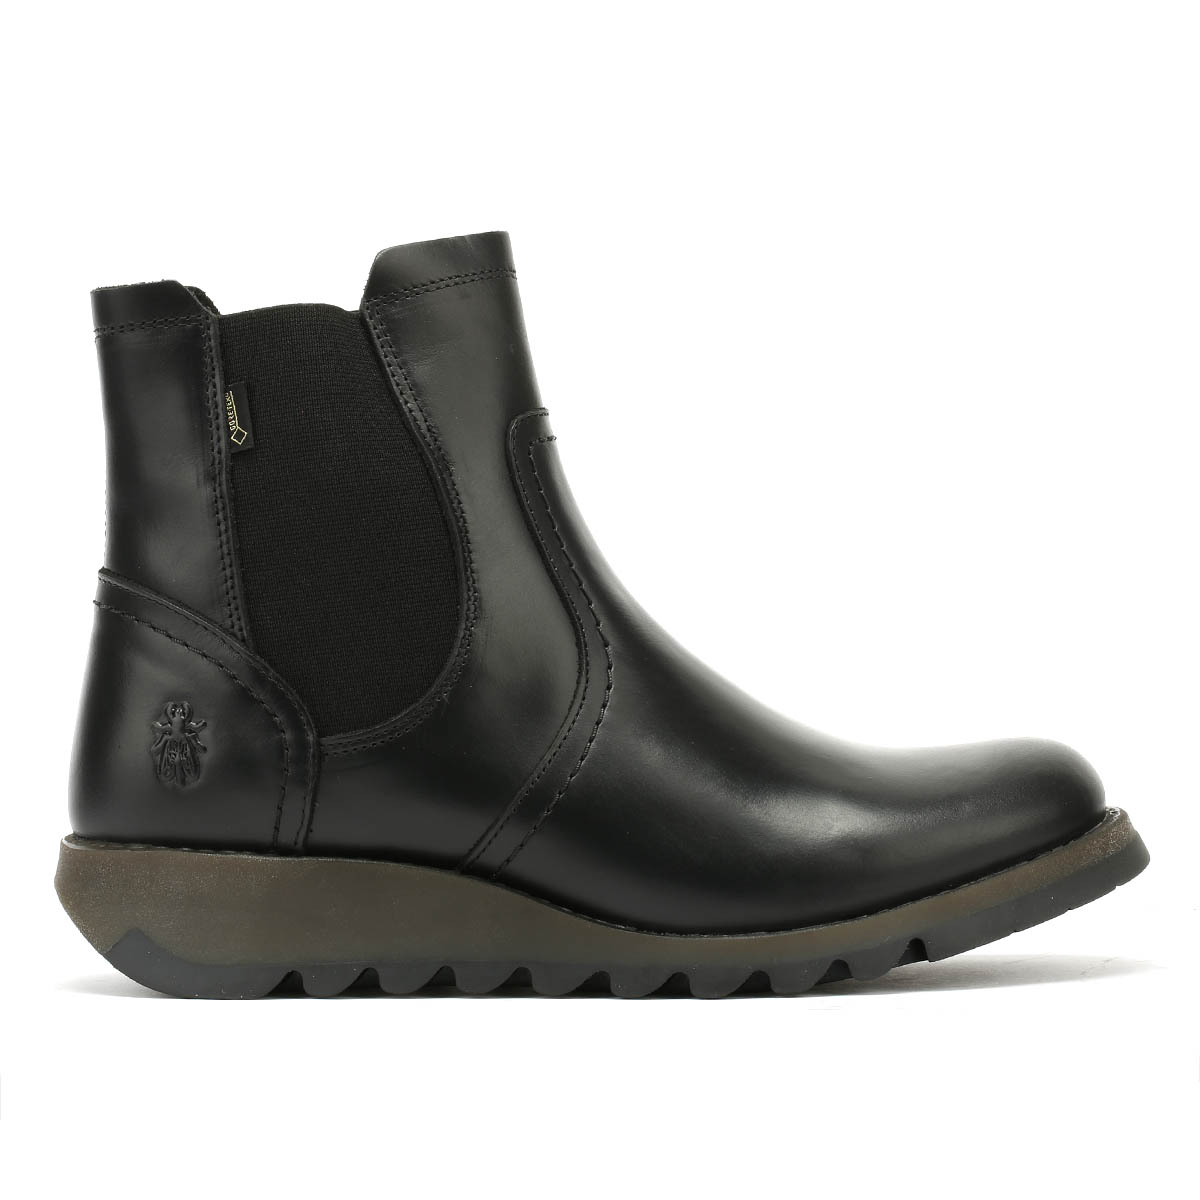 Fly-London-Womens-Boots-Black-Scon-Rug-Ladies-Leather-Winter-Ankle-Shoes thumbnail 26